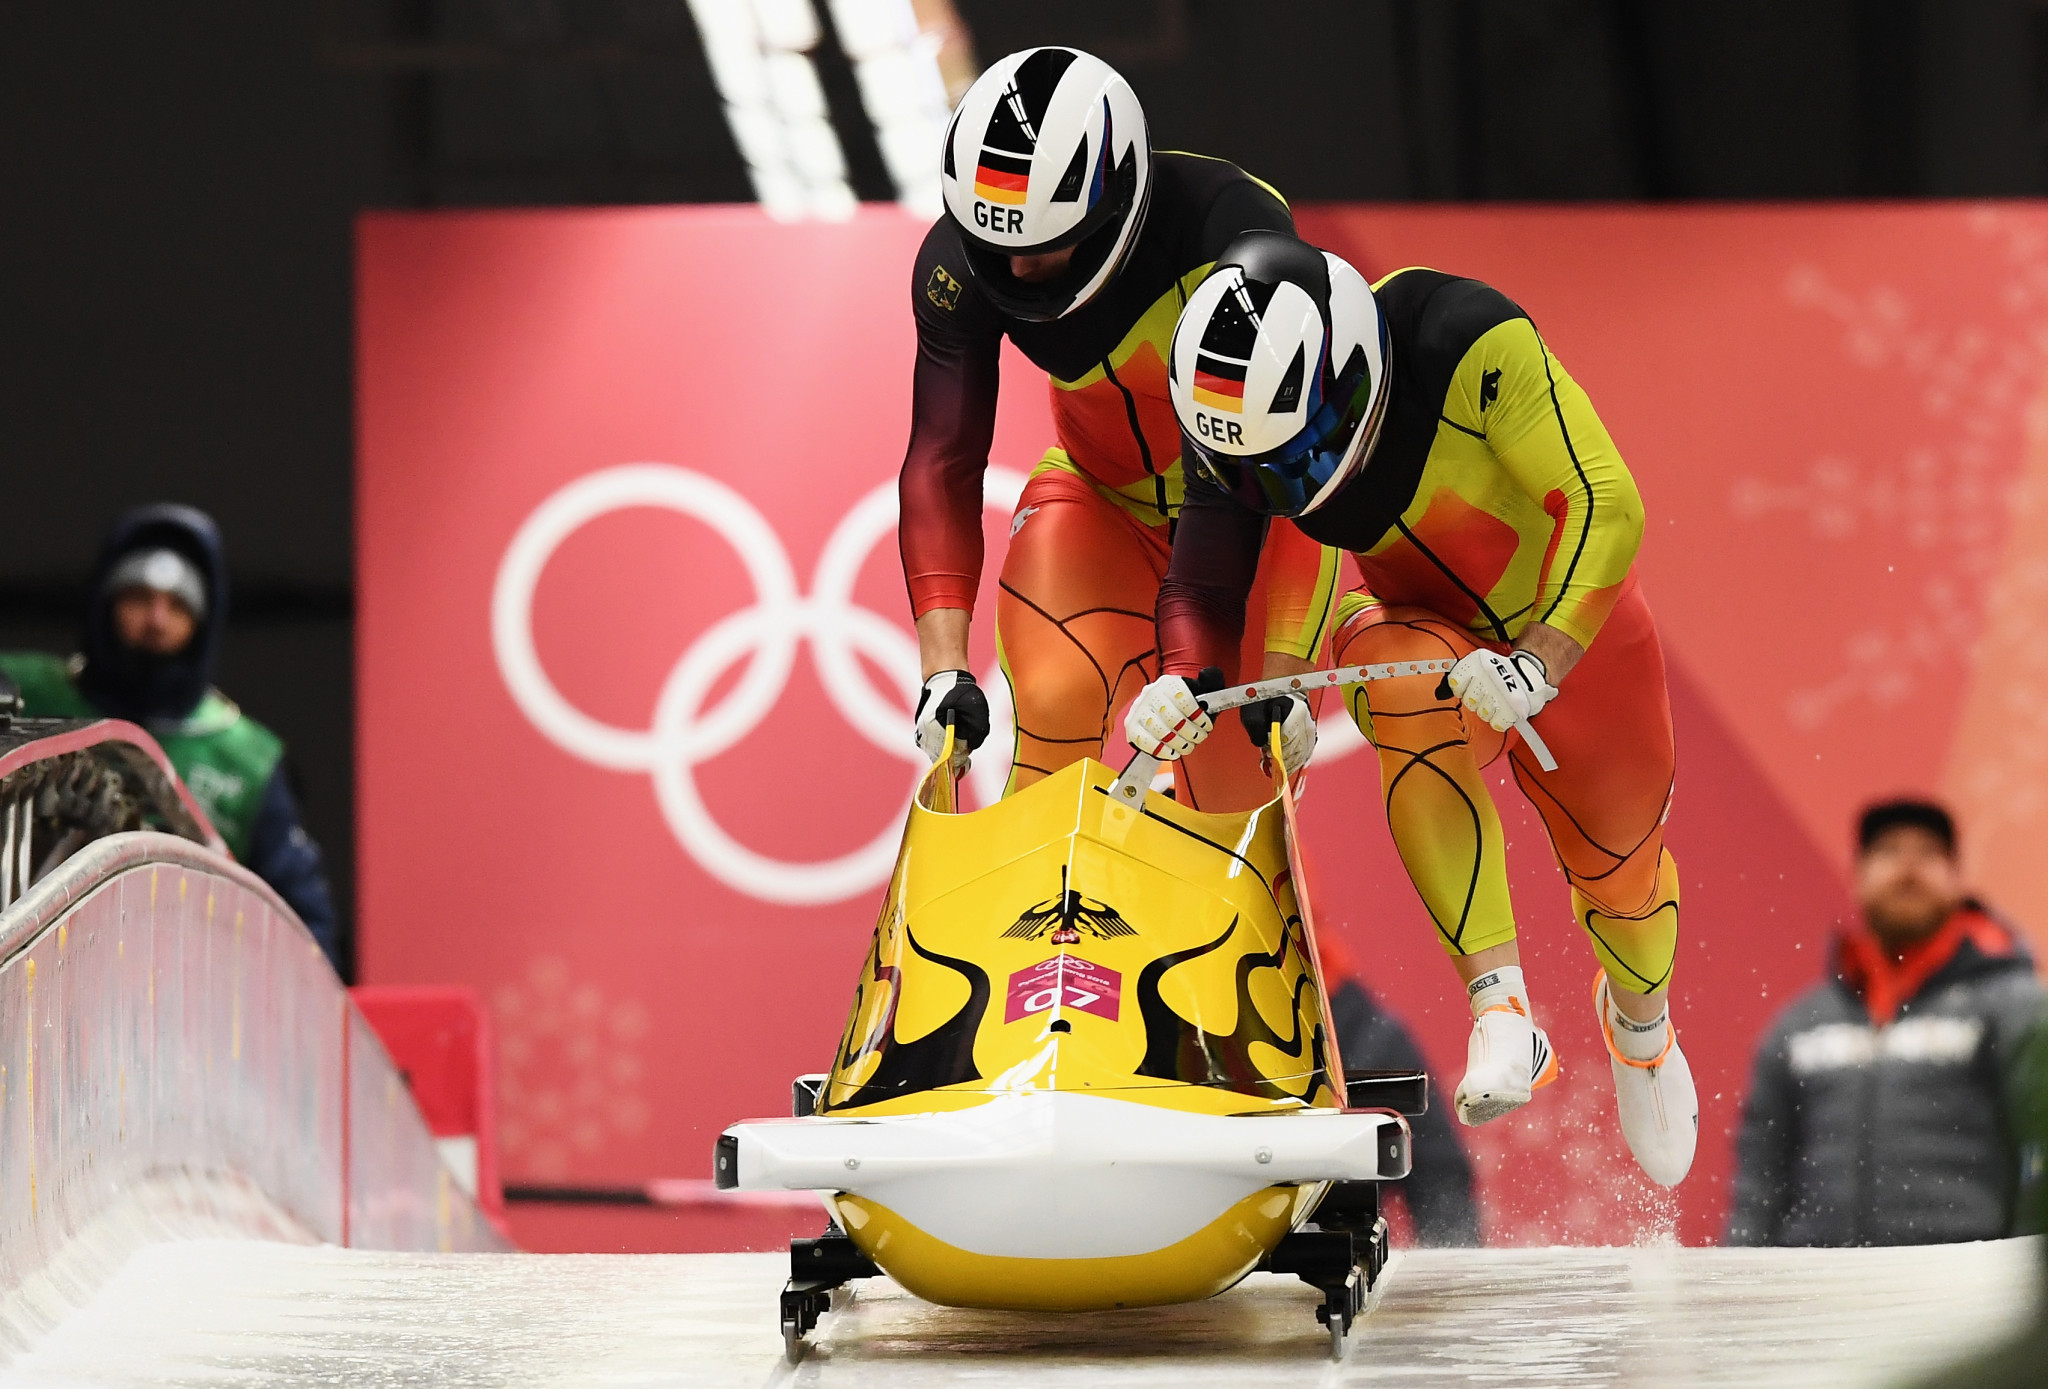 BMW creating two-man bobsleigh prototype for German teams